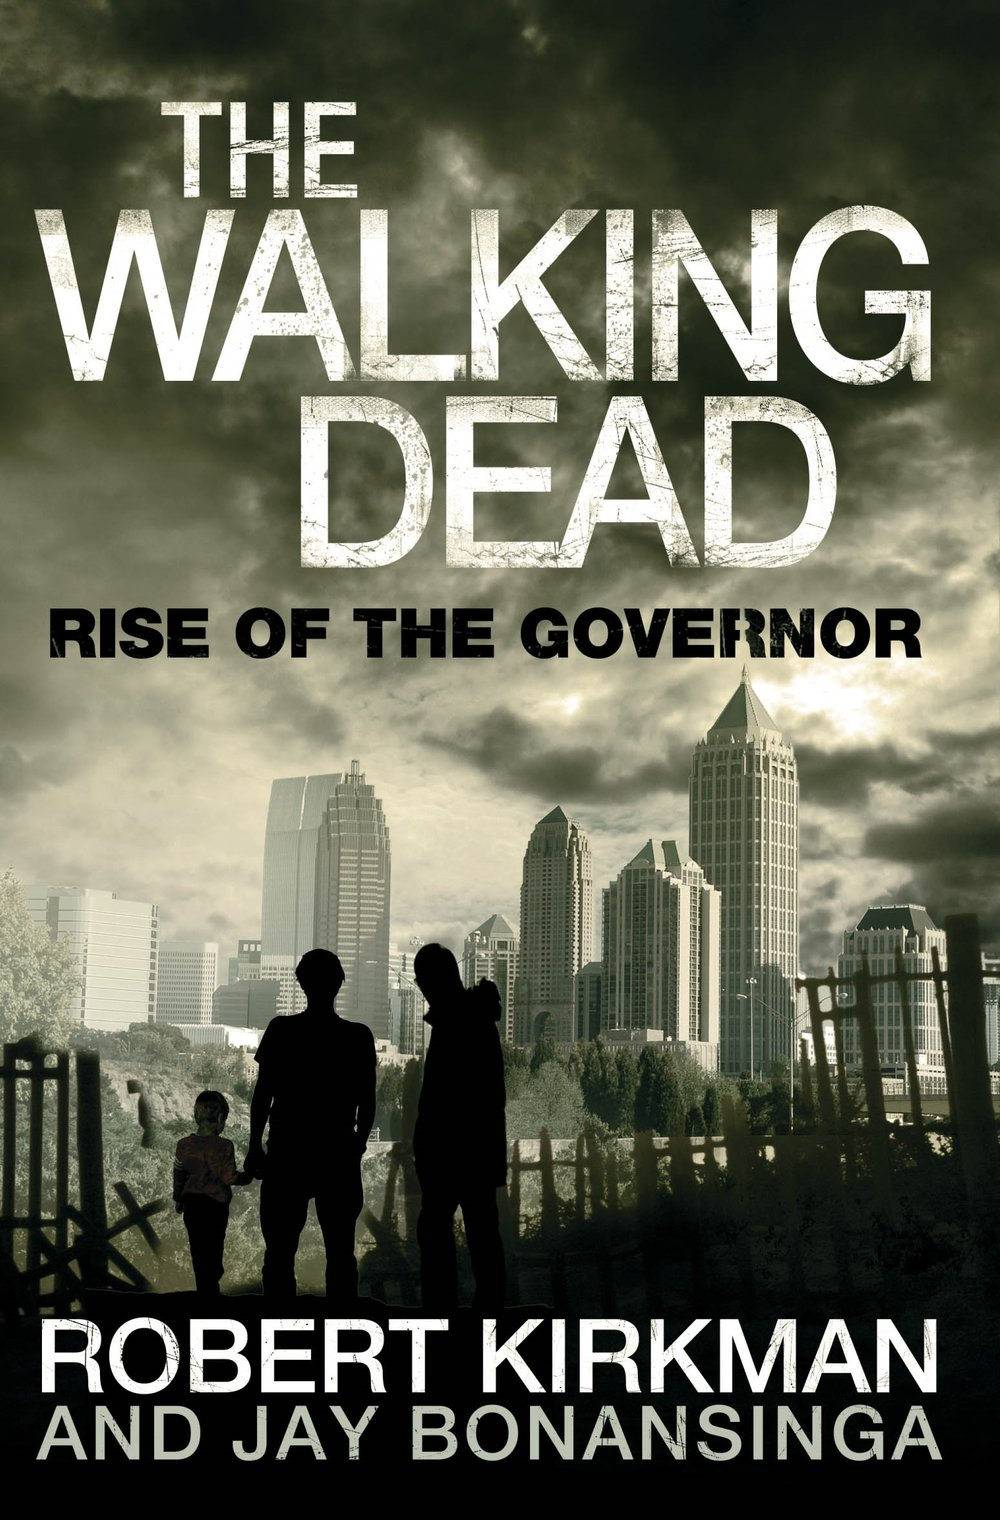 9780330541336The Walking Dead Rise of the Governor.jpg